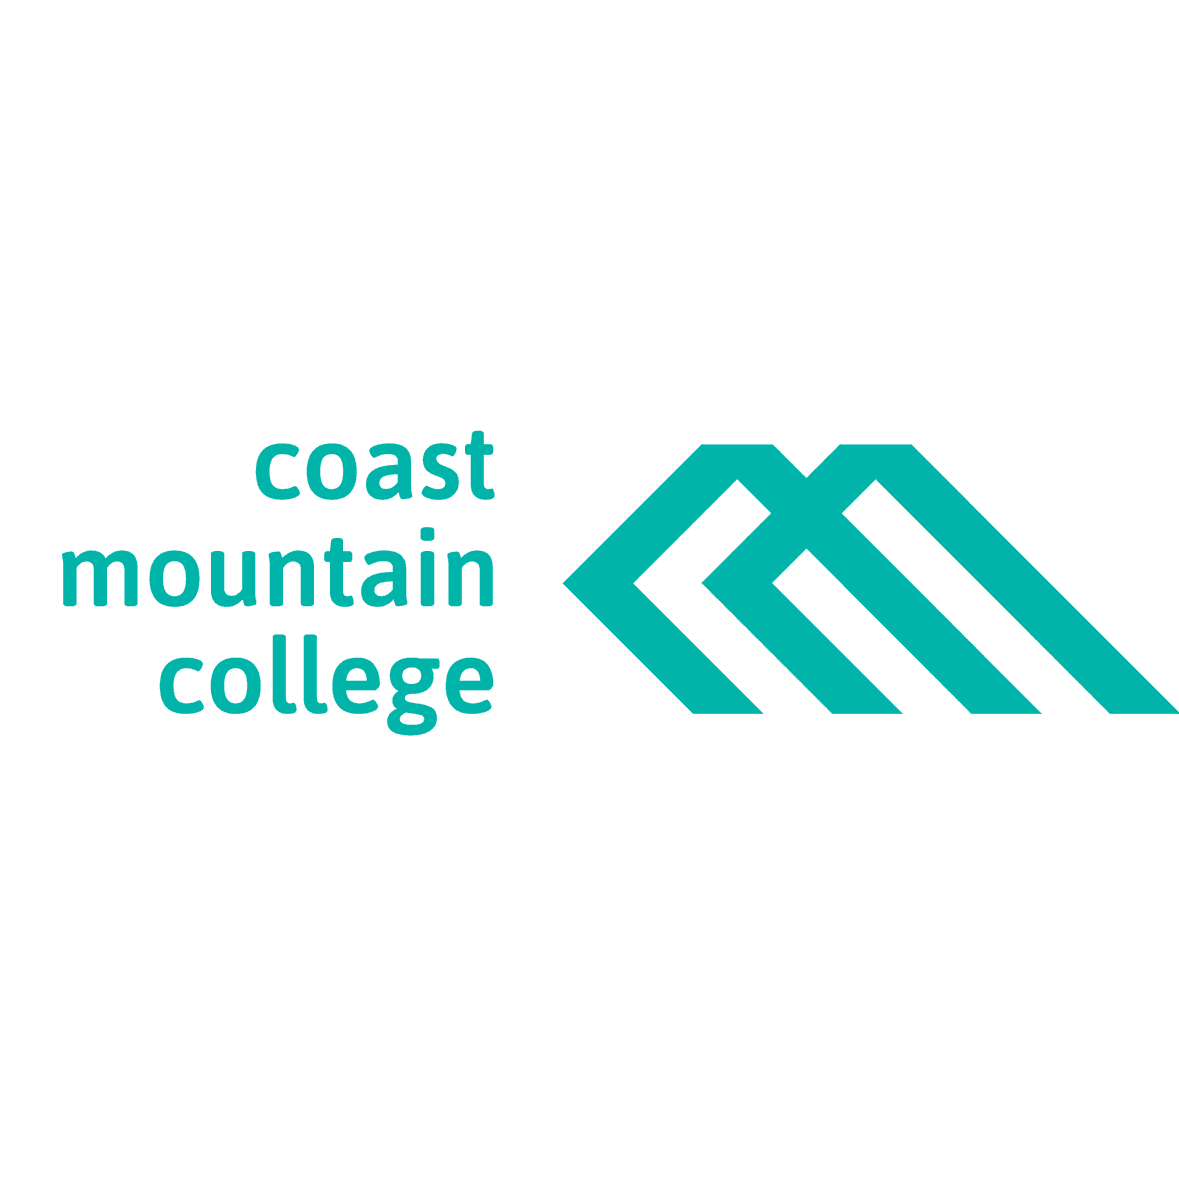 COAST MOUNTAIN